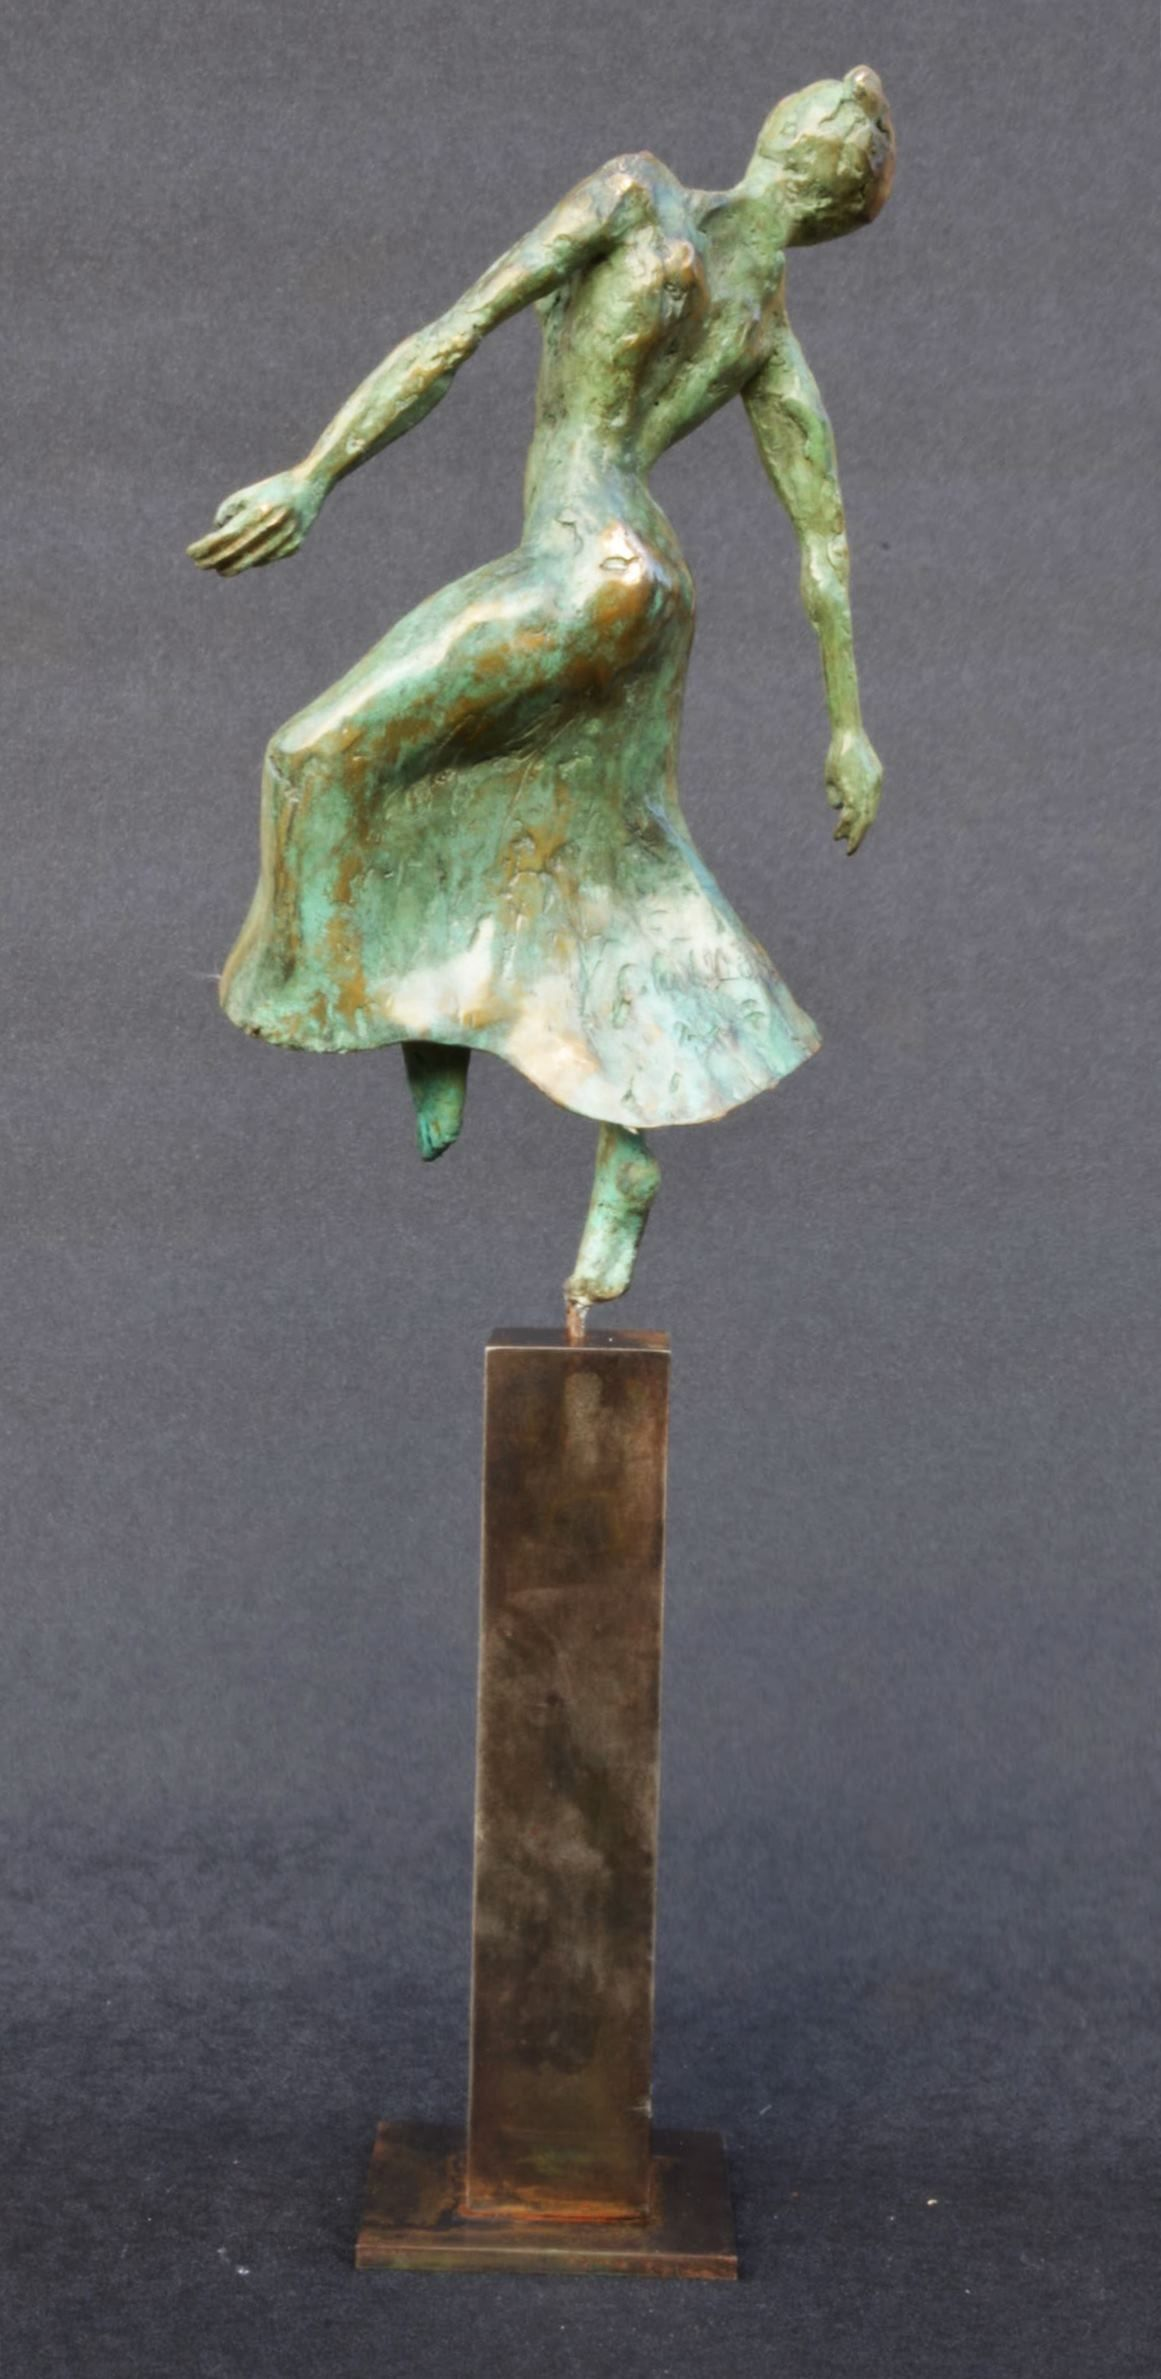 Danseuse moderne II,Yann Guillon,Sculpture